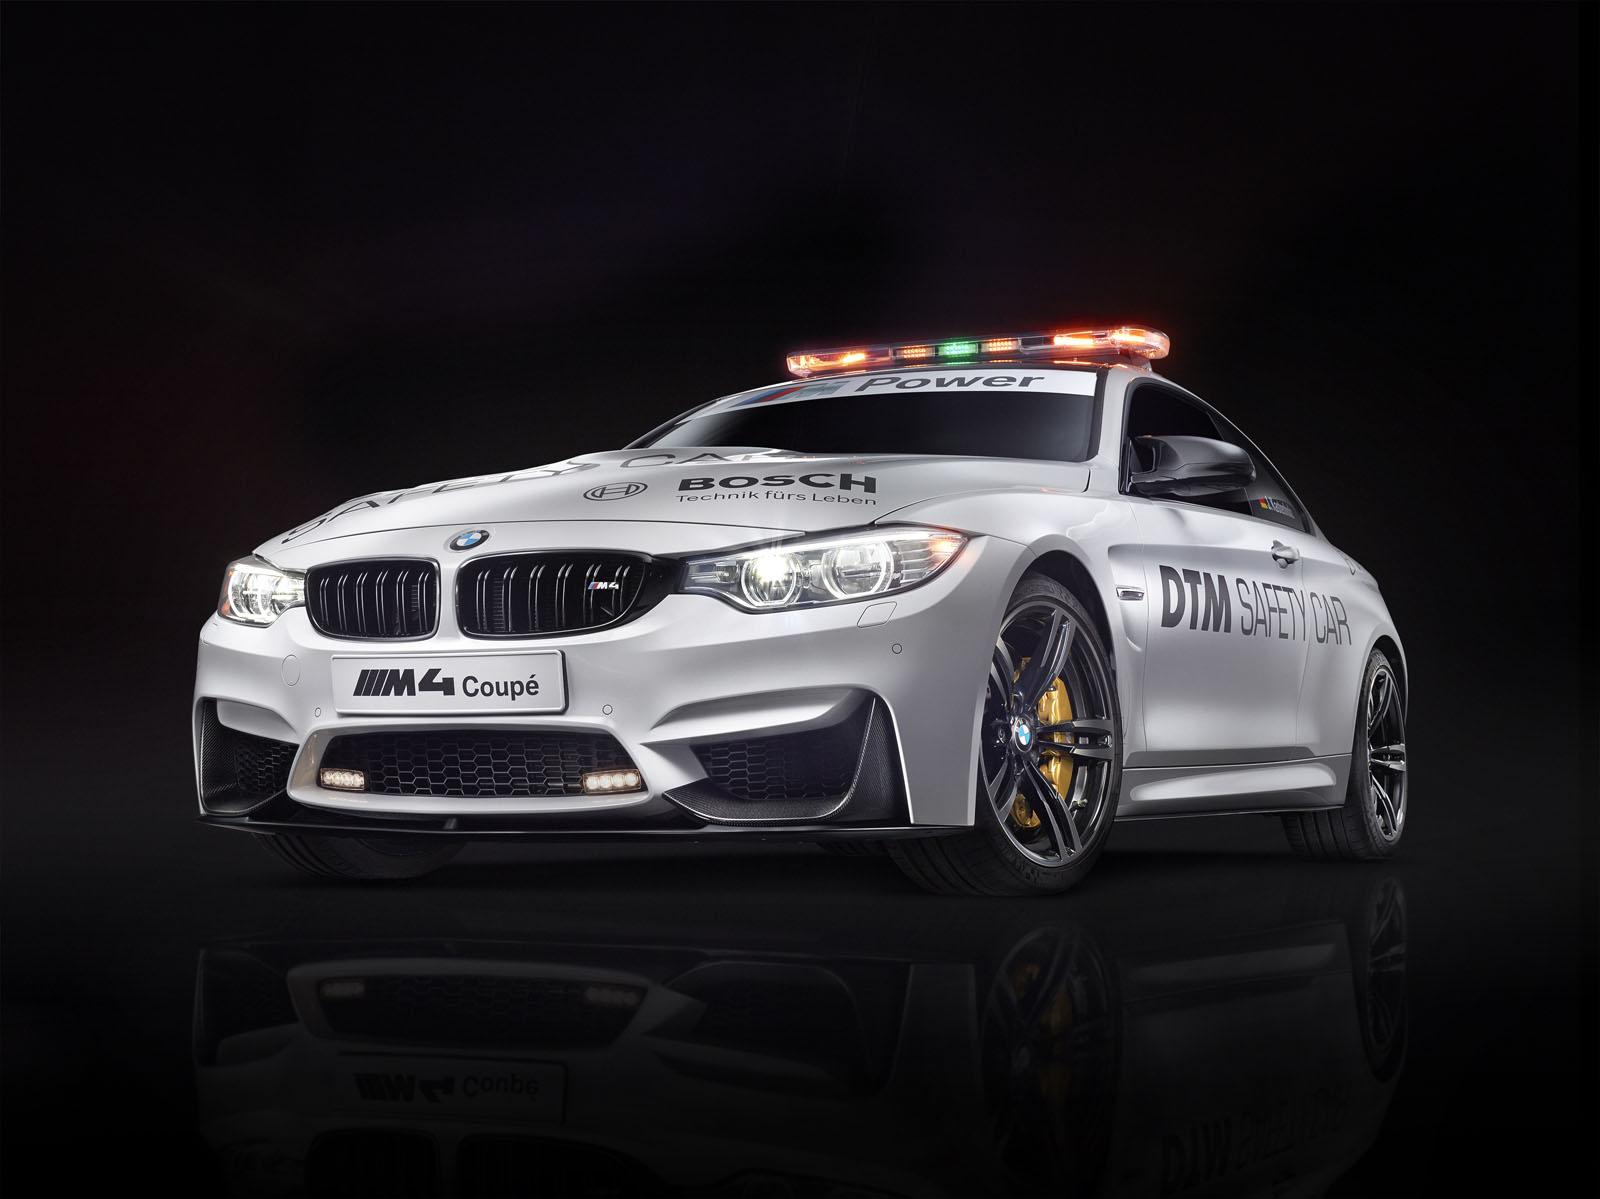 BMW Cars - News: M4 Coupe Safety Car to lead DTM races